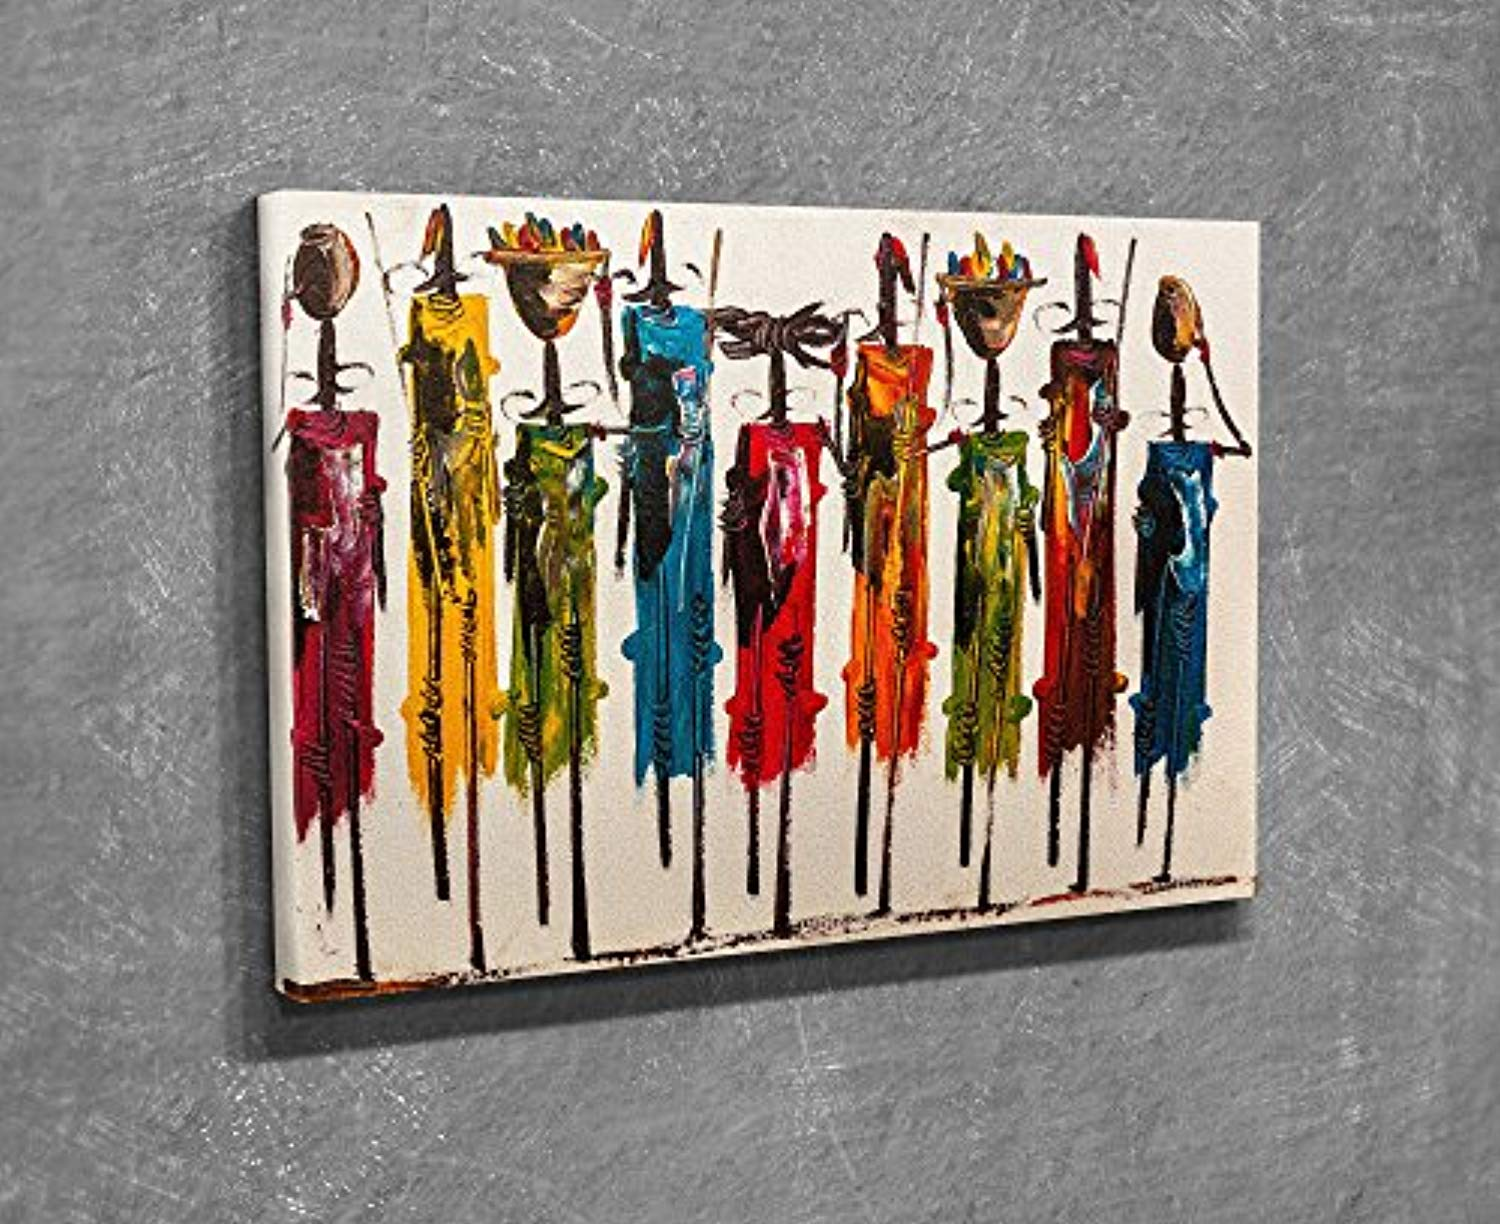 "LaModaHome Decorative Canvas Wall Art (12"" x 16"") Wooden Thick Frame Painting Colourful Absurd Drawing African Vase Item Stick MULTI VARIANTS in STORE!"